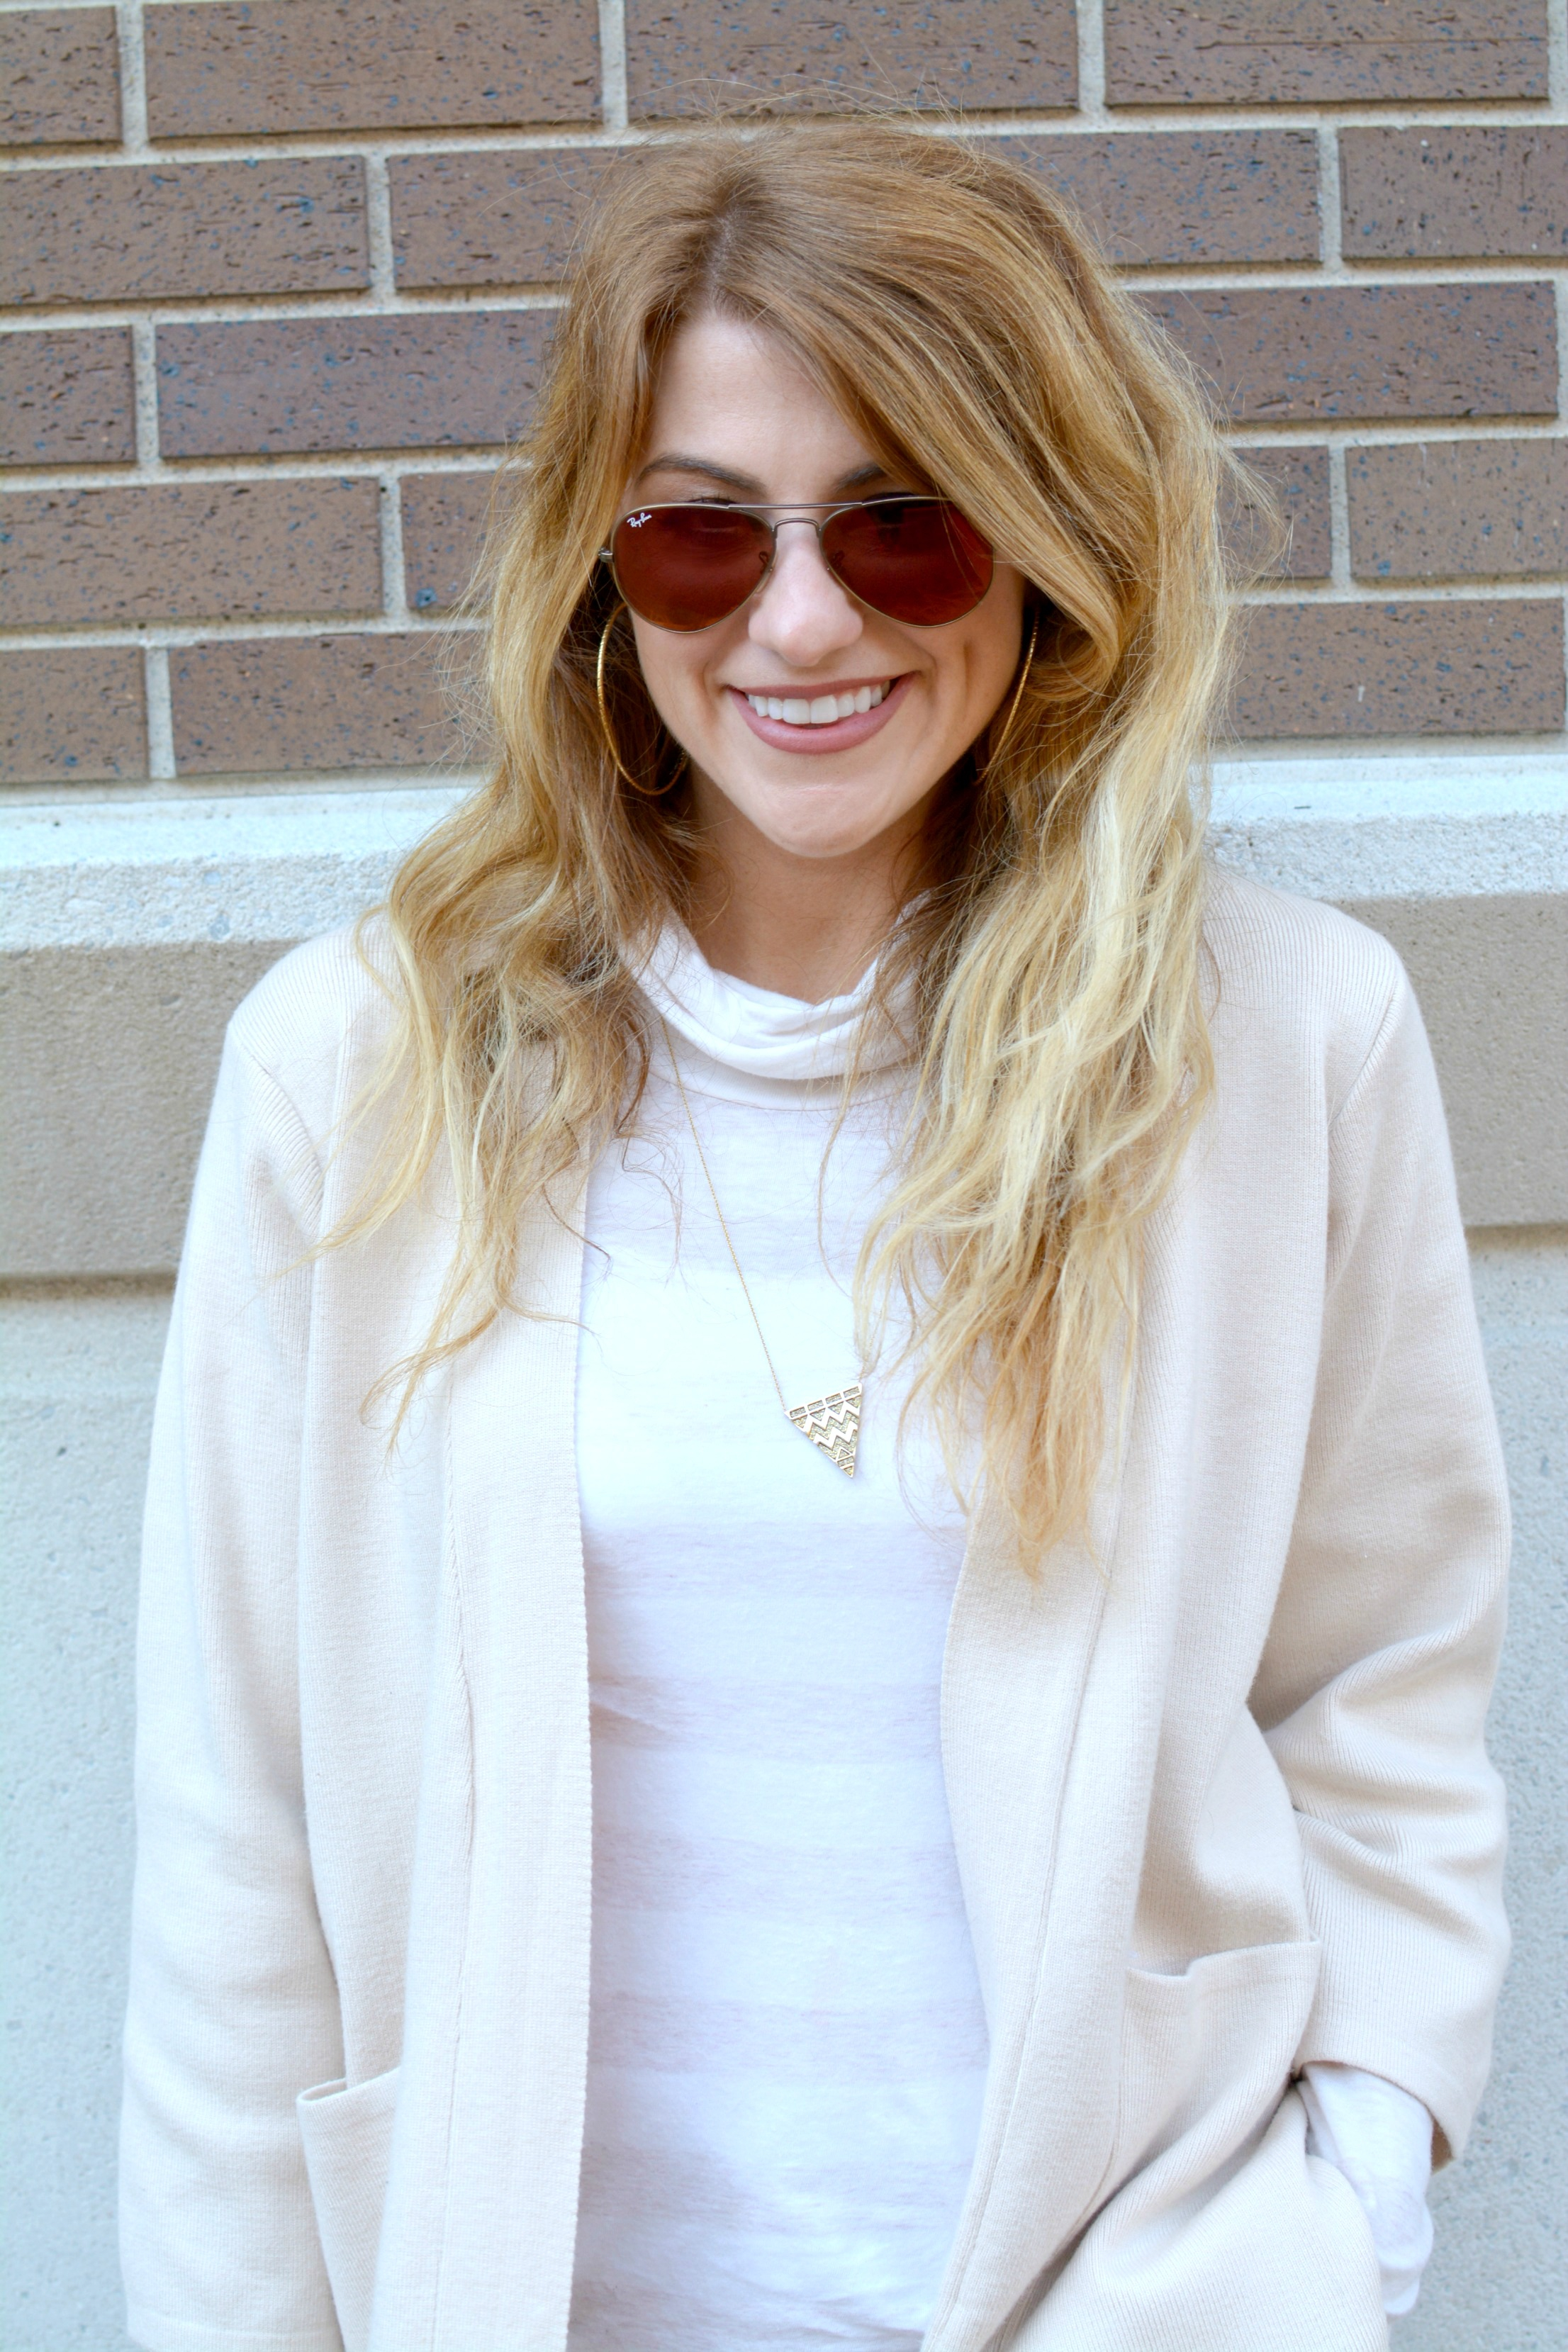 Ashley from LSR in a beige cardigan and red Ray-Ban sunglasses